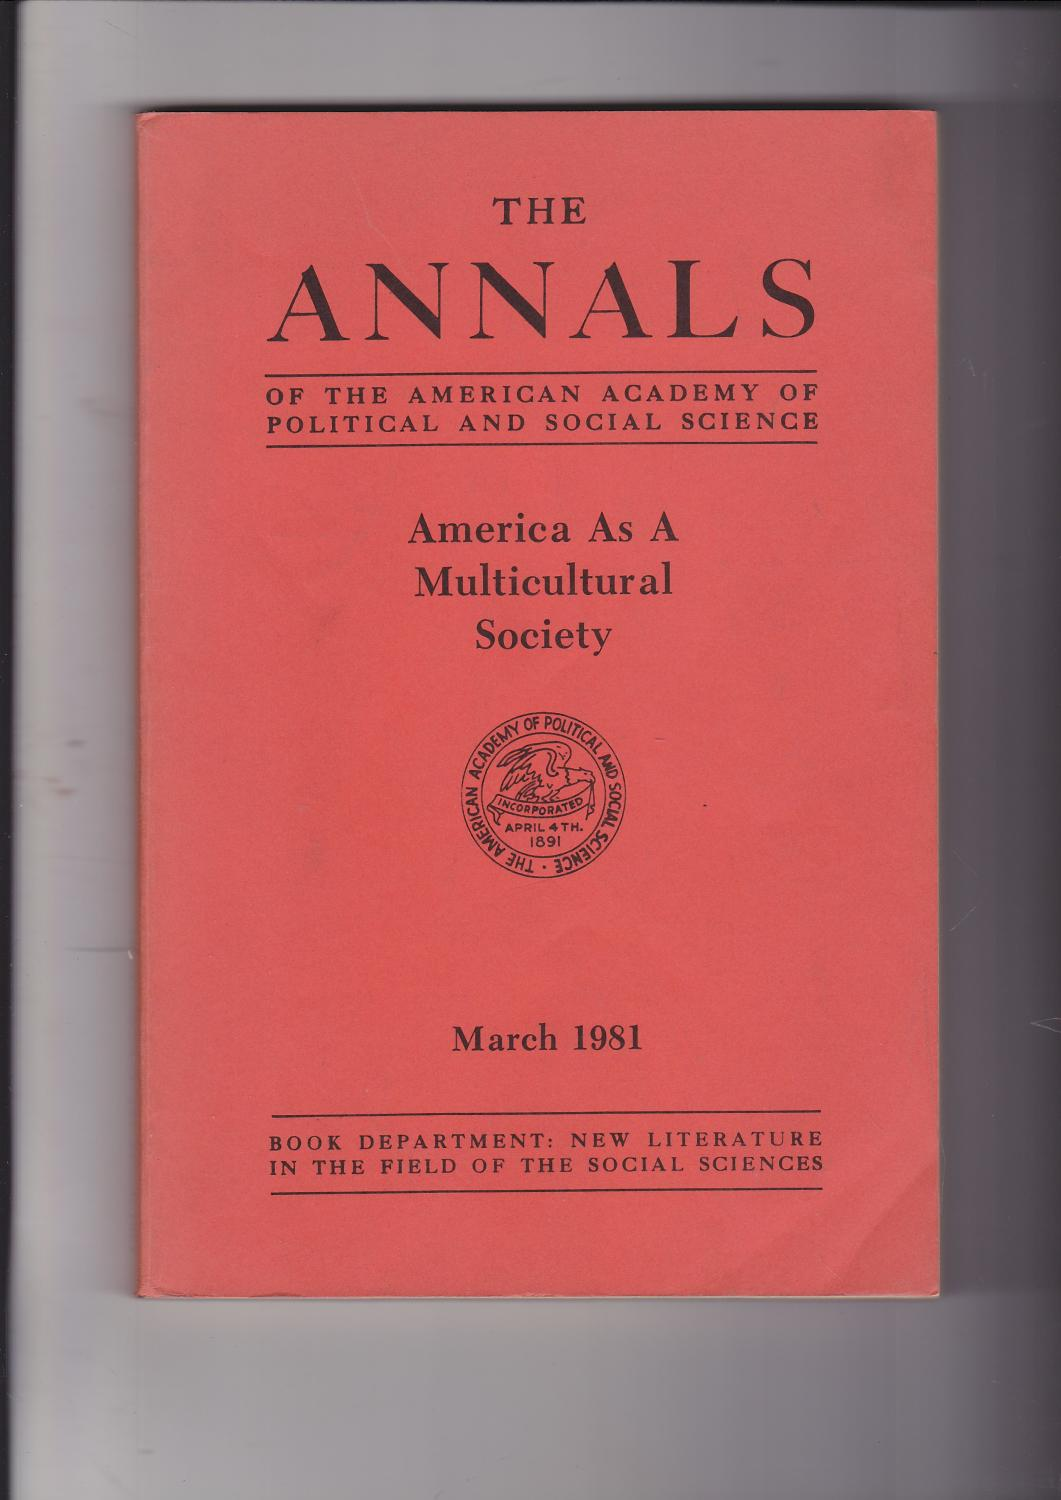 America As a Multicultural Society (The Annals of the American Academy of Political and Social Science Ser., No. 454) Vol. Volume 454 March 1981 - Gordon, Milton M.[Myron] ; Lambert, Richard D. (editors) Alan W. Heston. Editor.